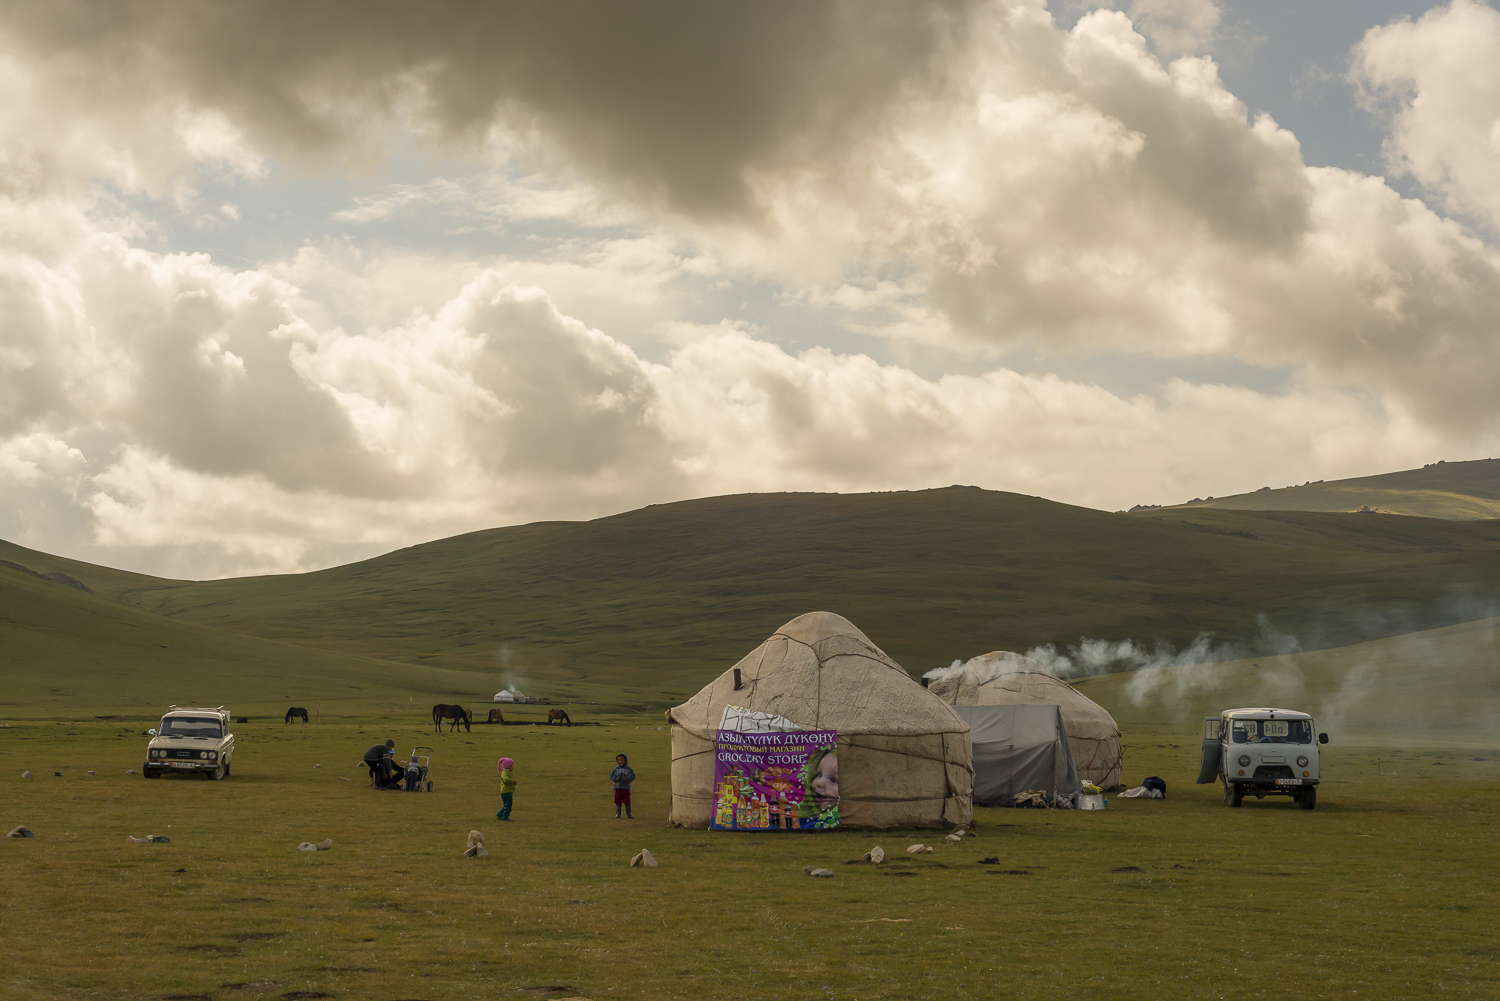 jo-kearney-photography-video-kyrgyzstan-nomads-yurts.jpg